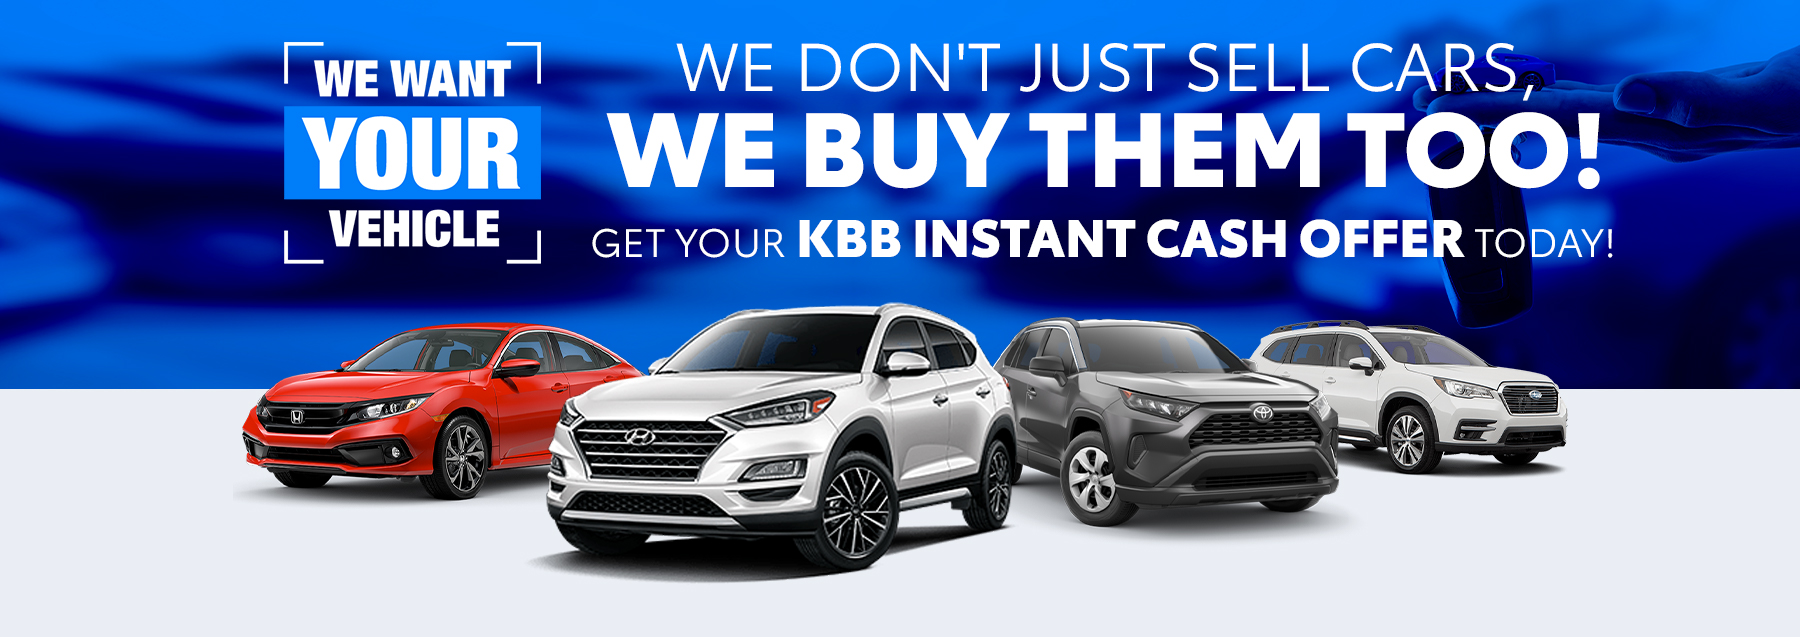 WE DON'T JUST SELL CARS, WE BUY THEM TOO! Get your KBB Instant Cash offer today!